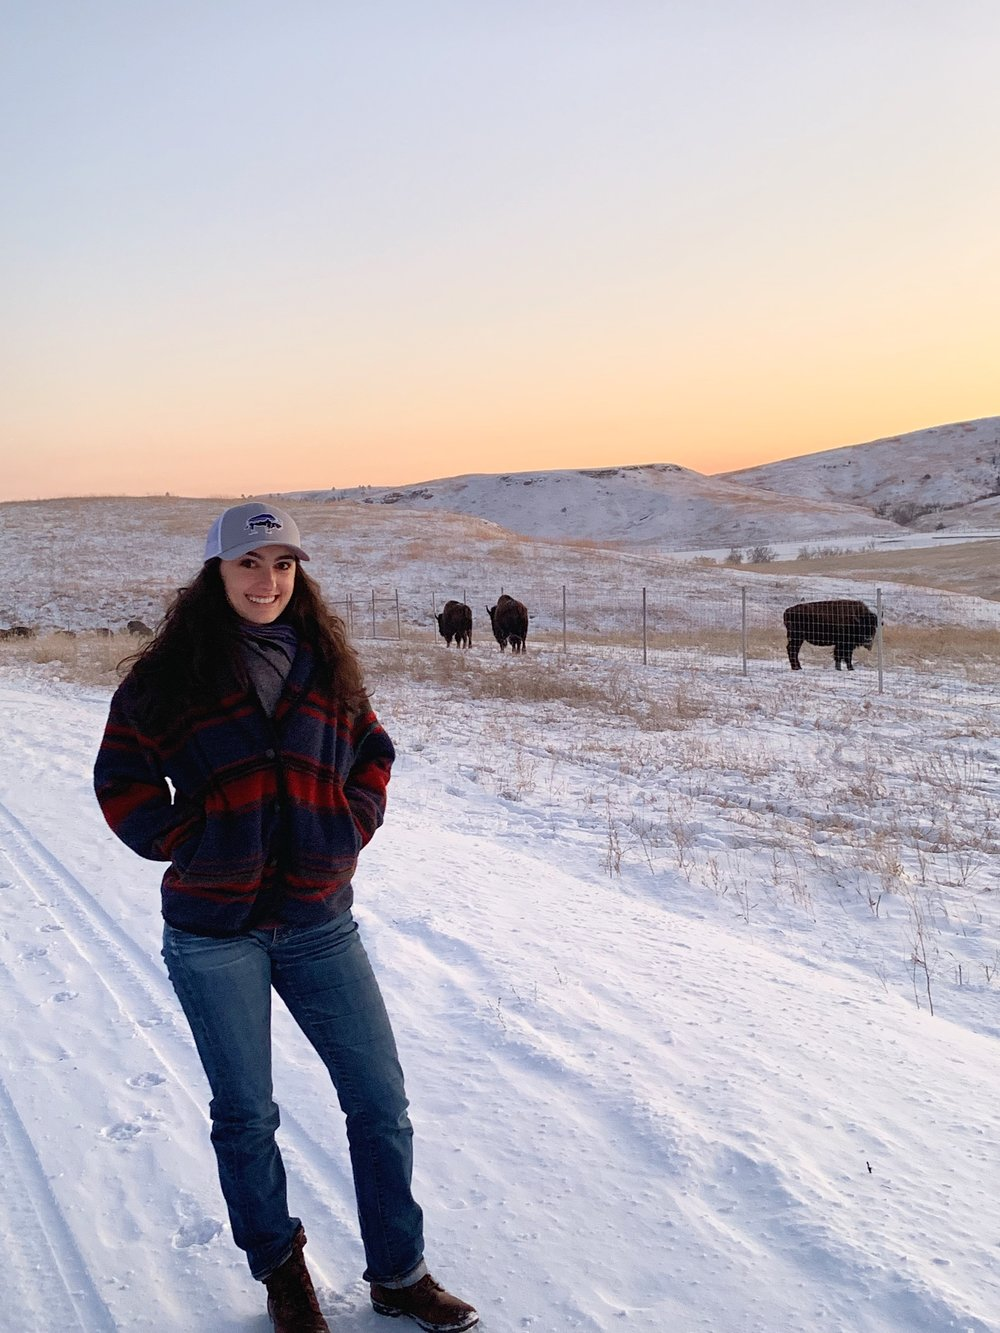 When the coast was clear, we jumped out of the truck and got a photo of me WITH THE BISON!